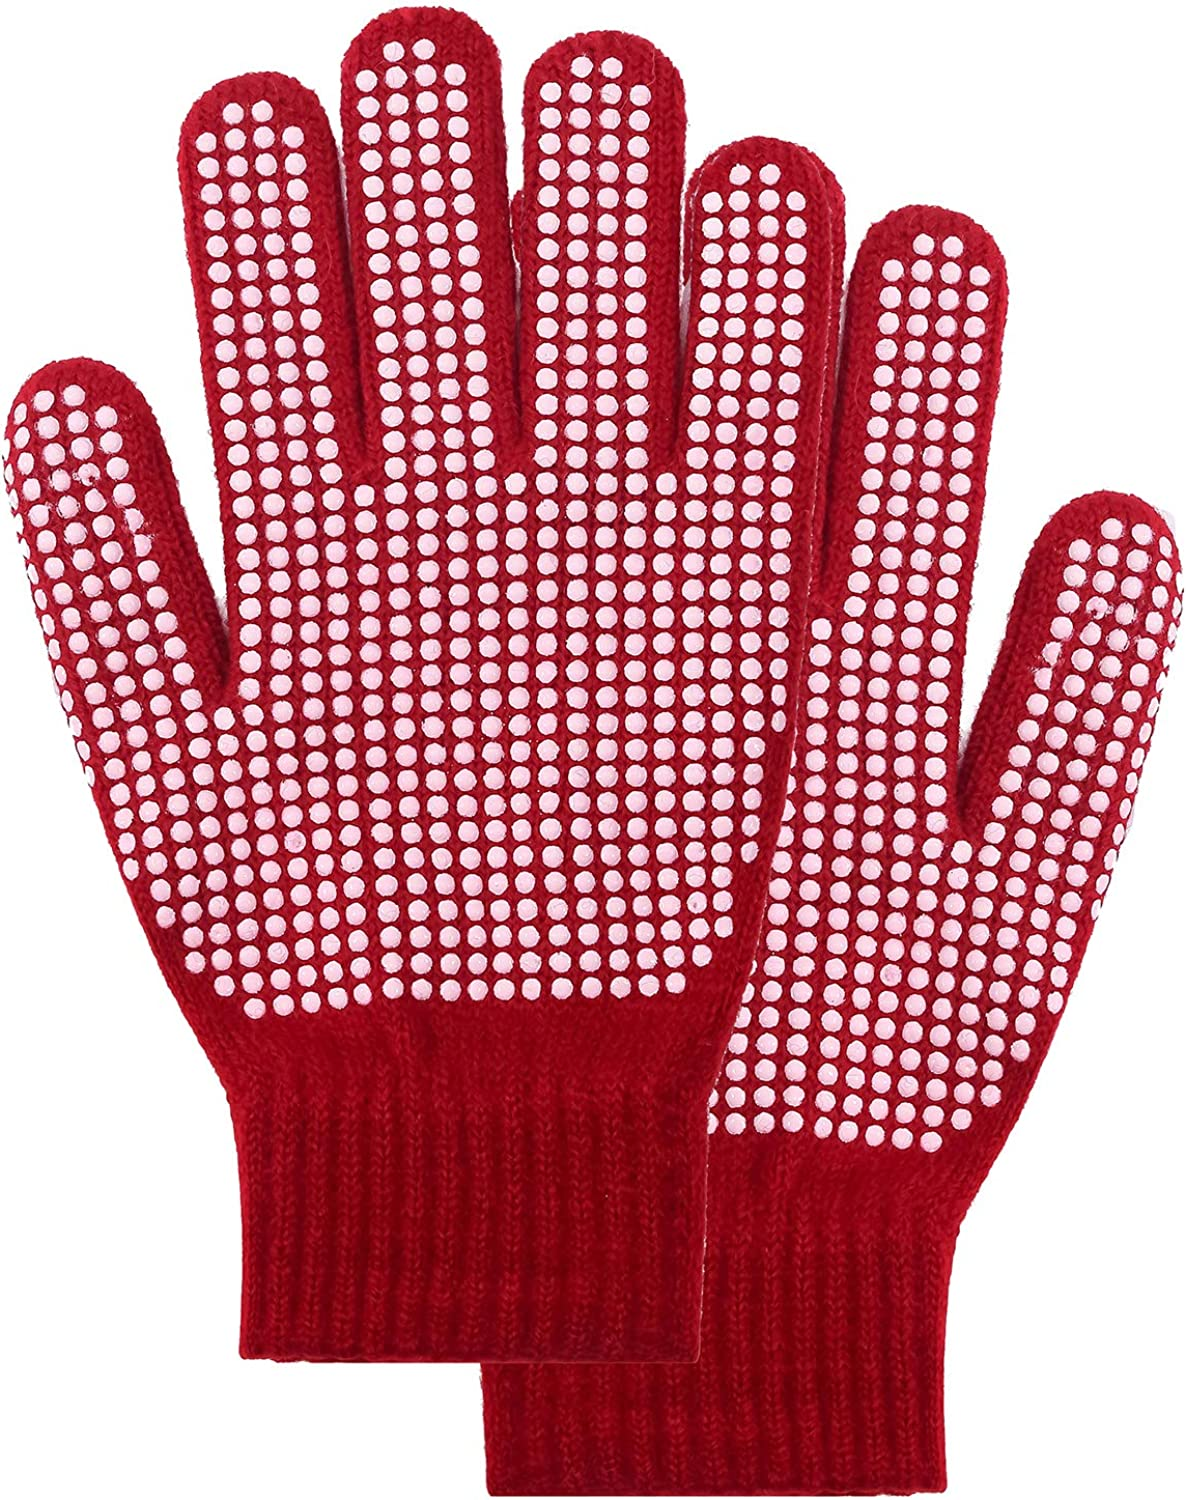 PZLE Knit Gloves With...